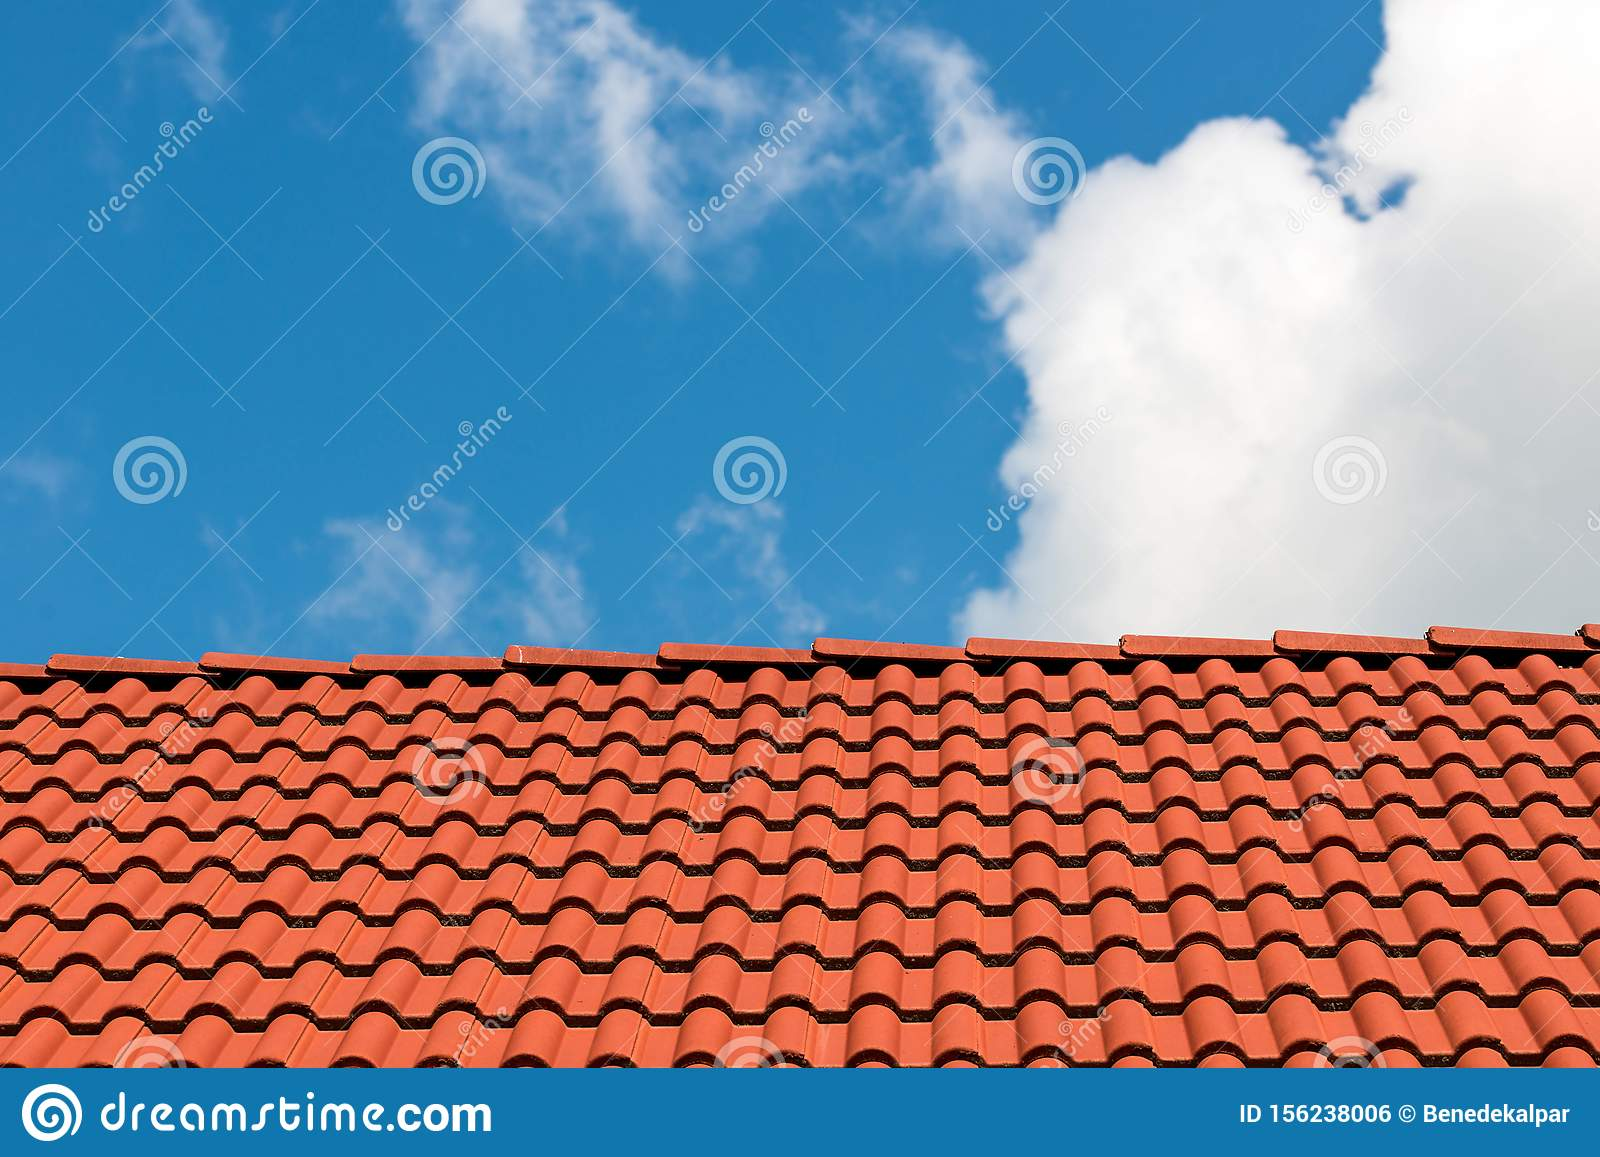 Red tiles on rooftop, beautiful blue sky with white clouds